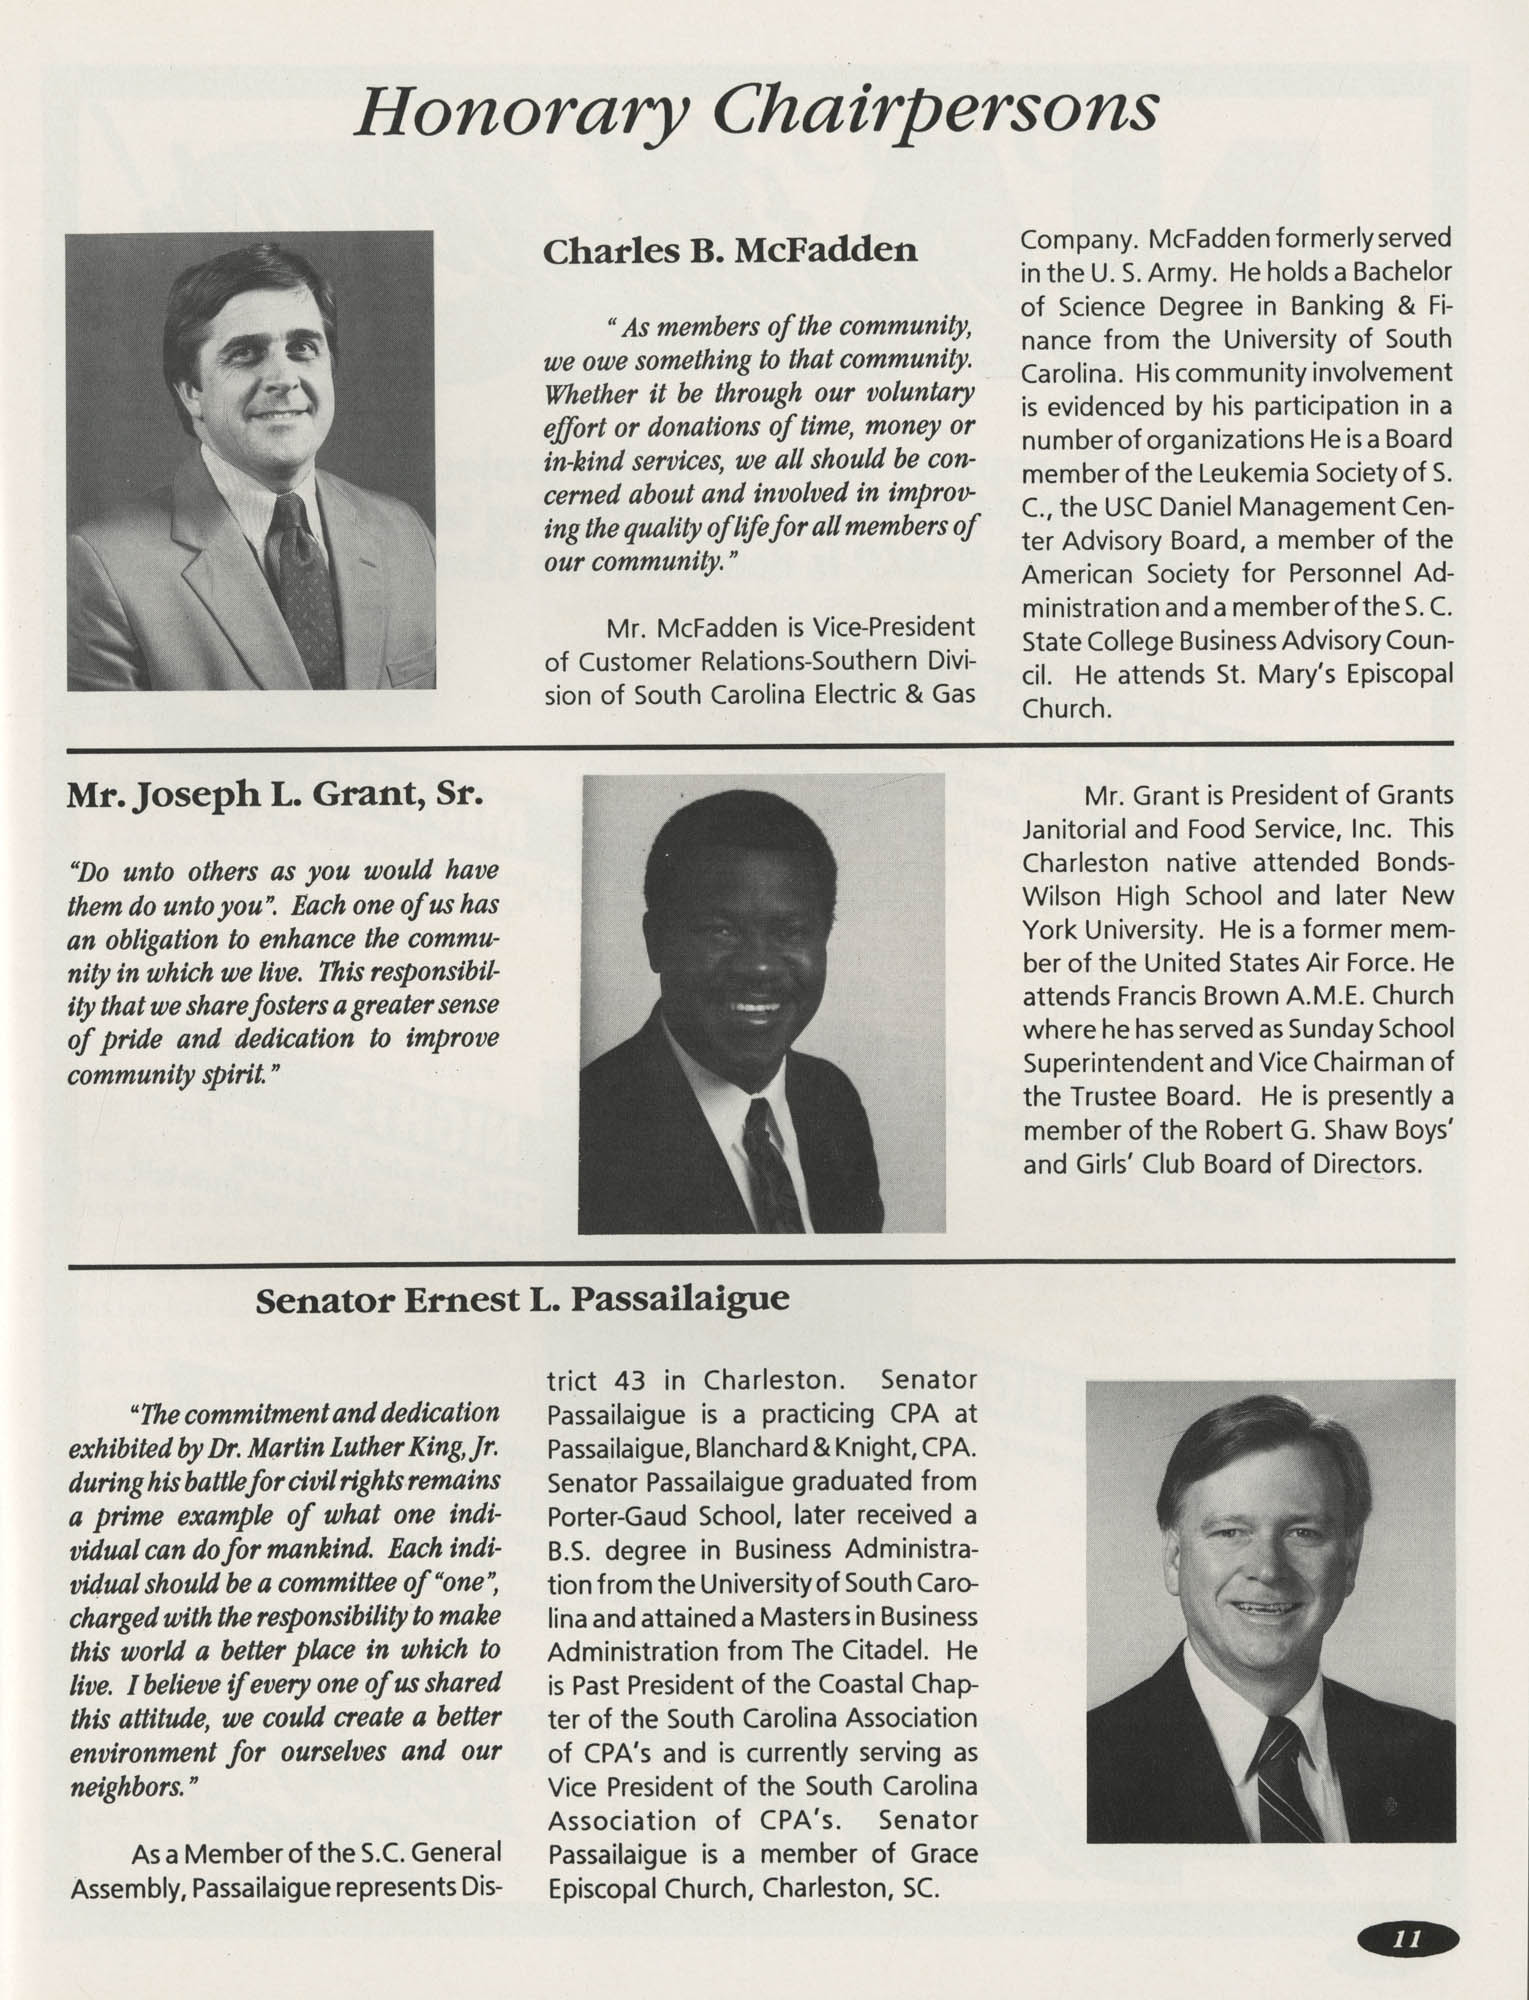 1991 Freedom Fund Magazine, Charleston Branch of the NAACP, Page 11